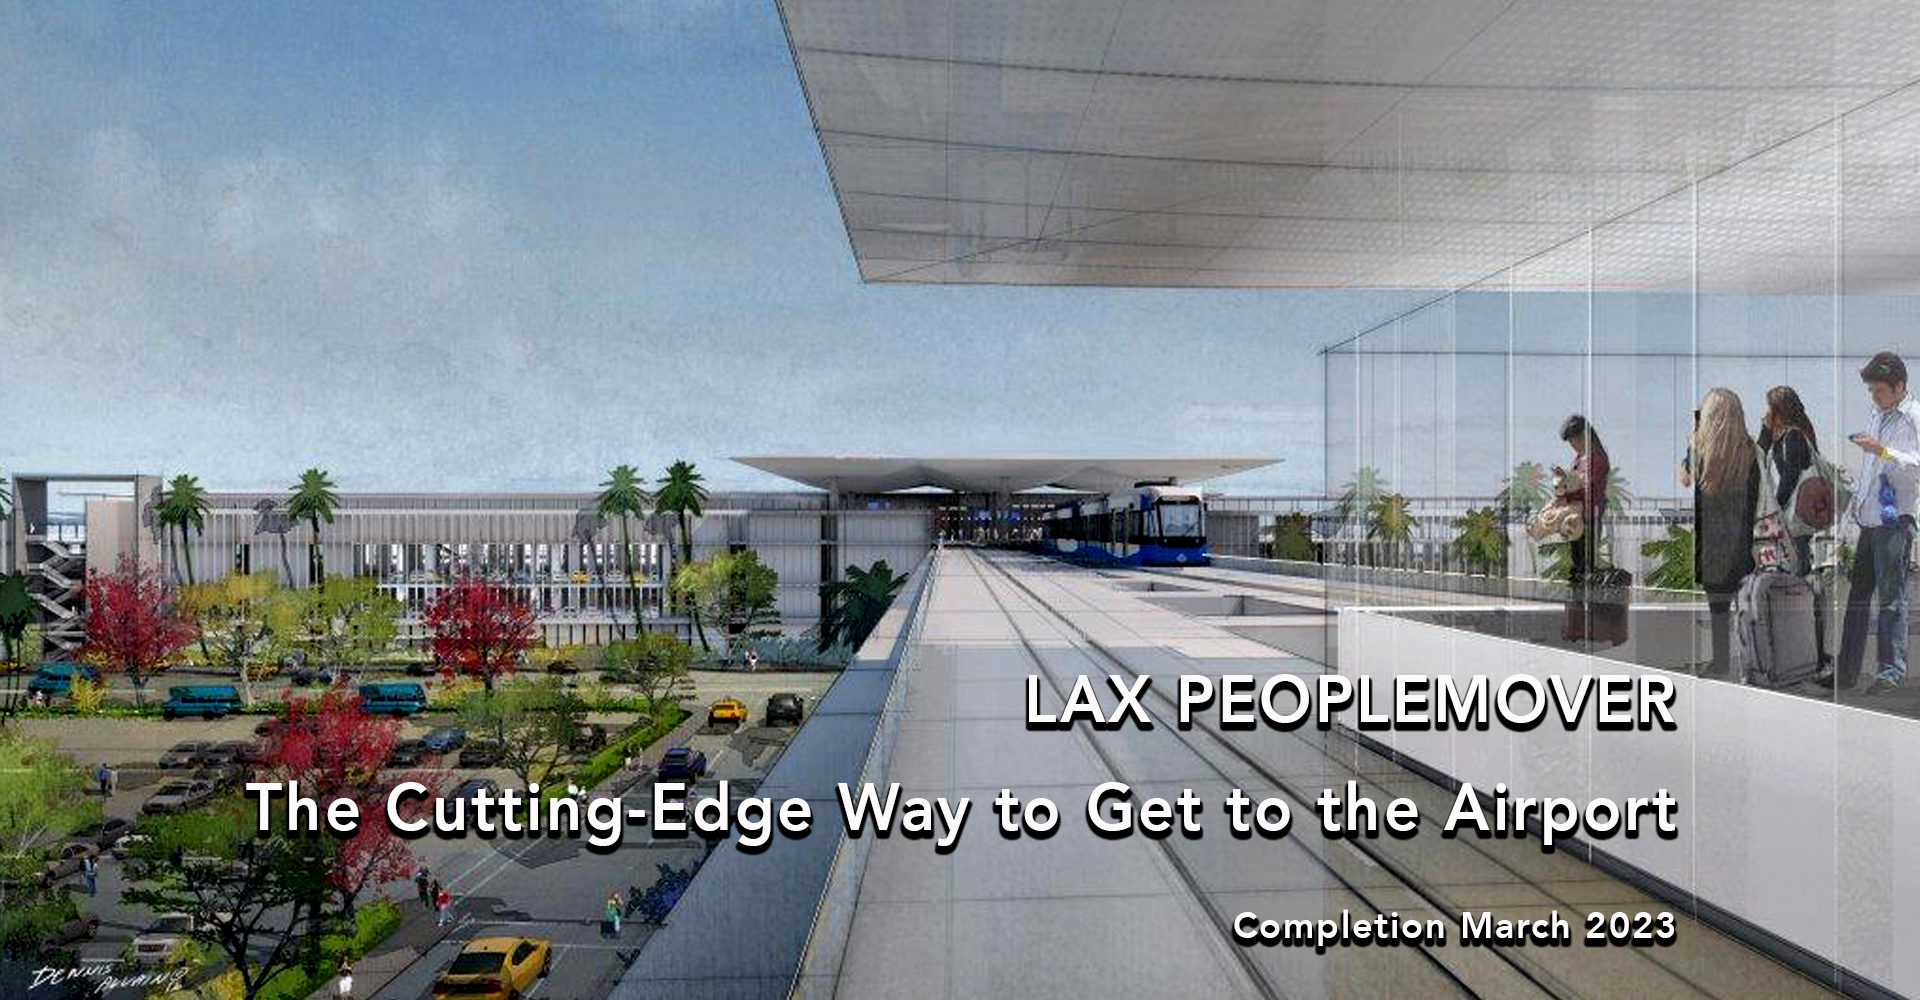 LAX people mover 13 .jpg